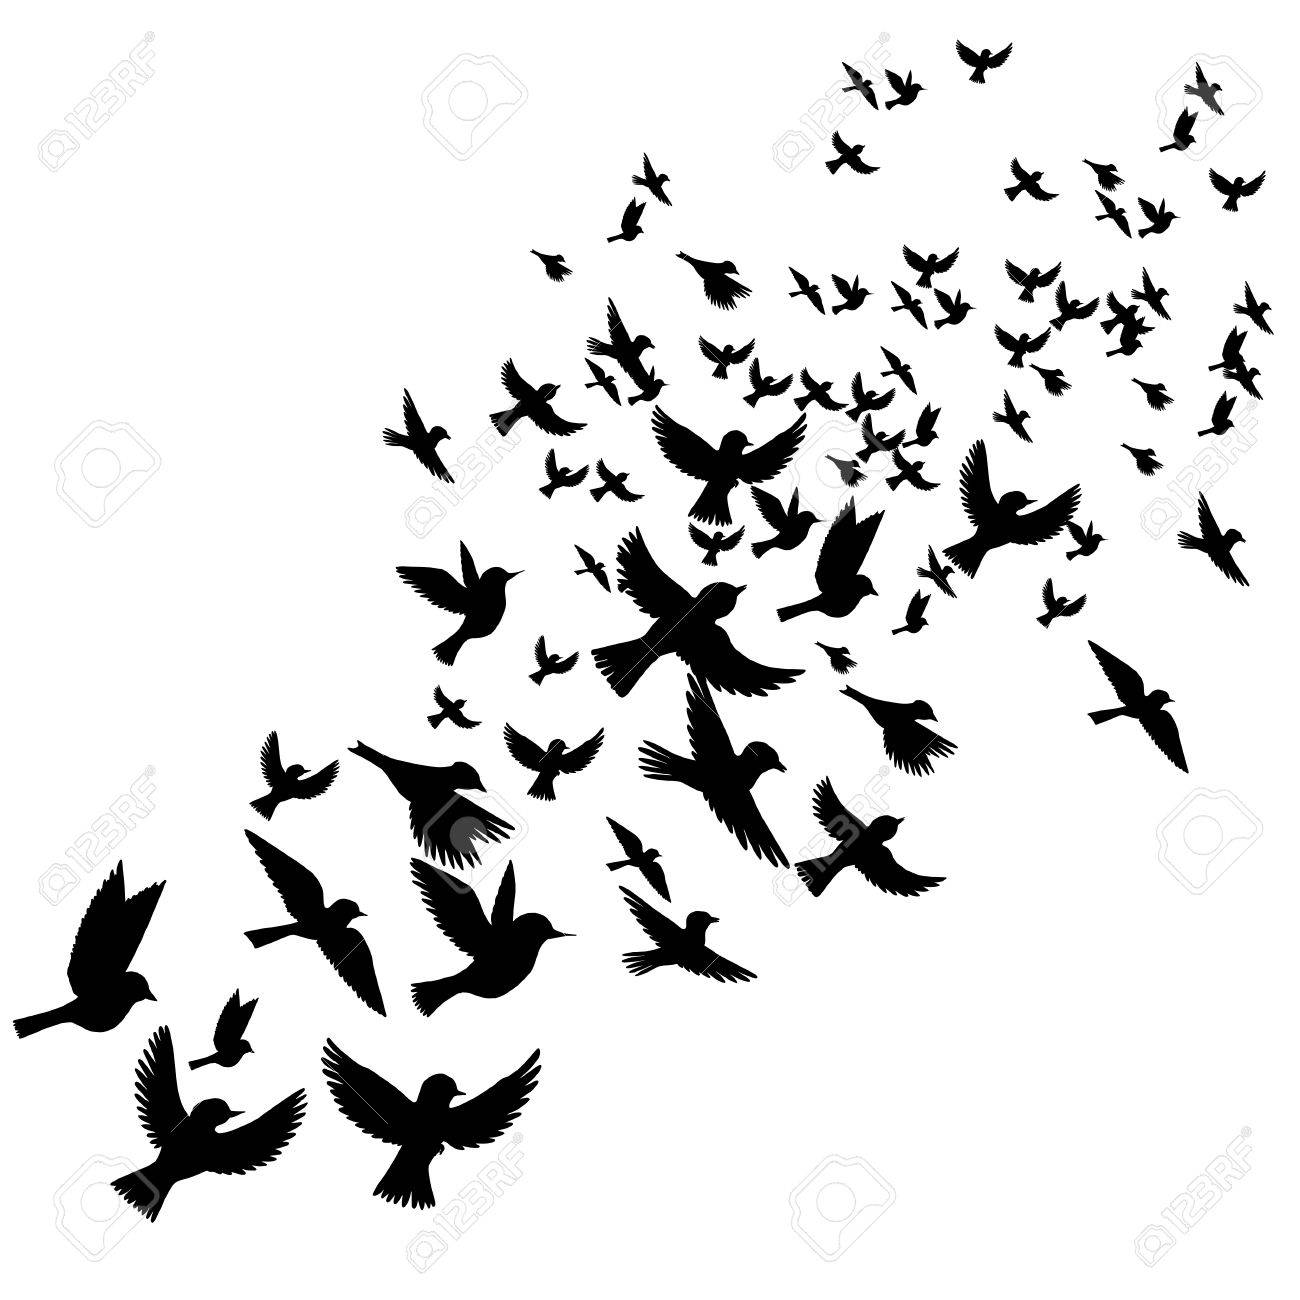 Bird flock, vector flying birds silhouettes, hand drawn songbirds Stock  Vector - 75011021